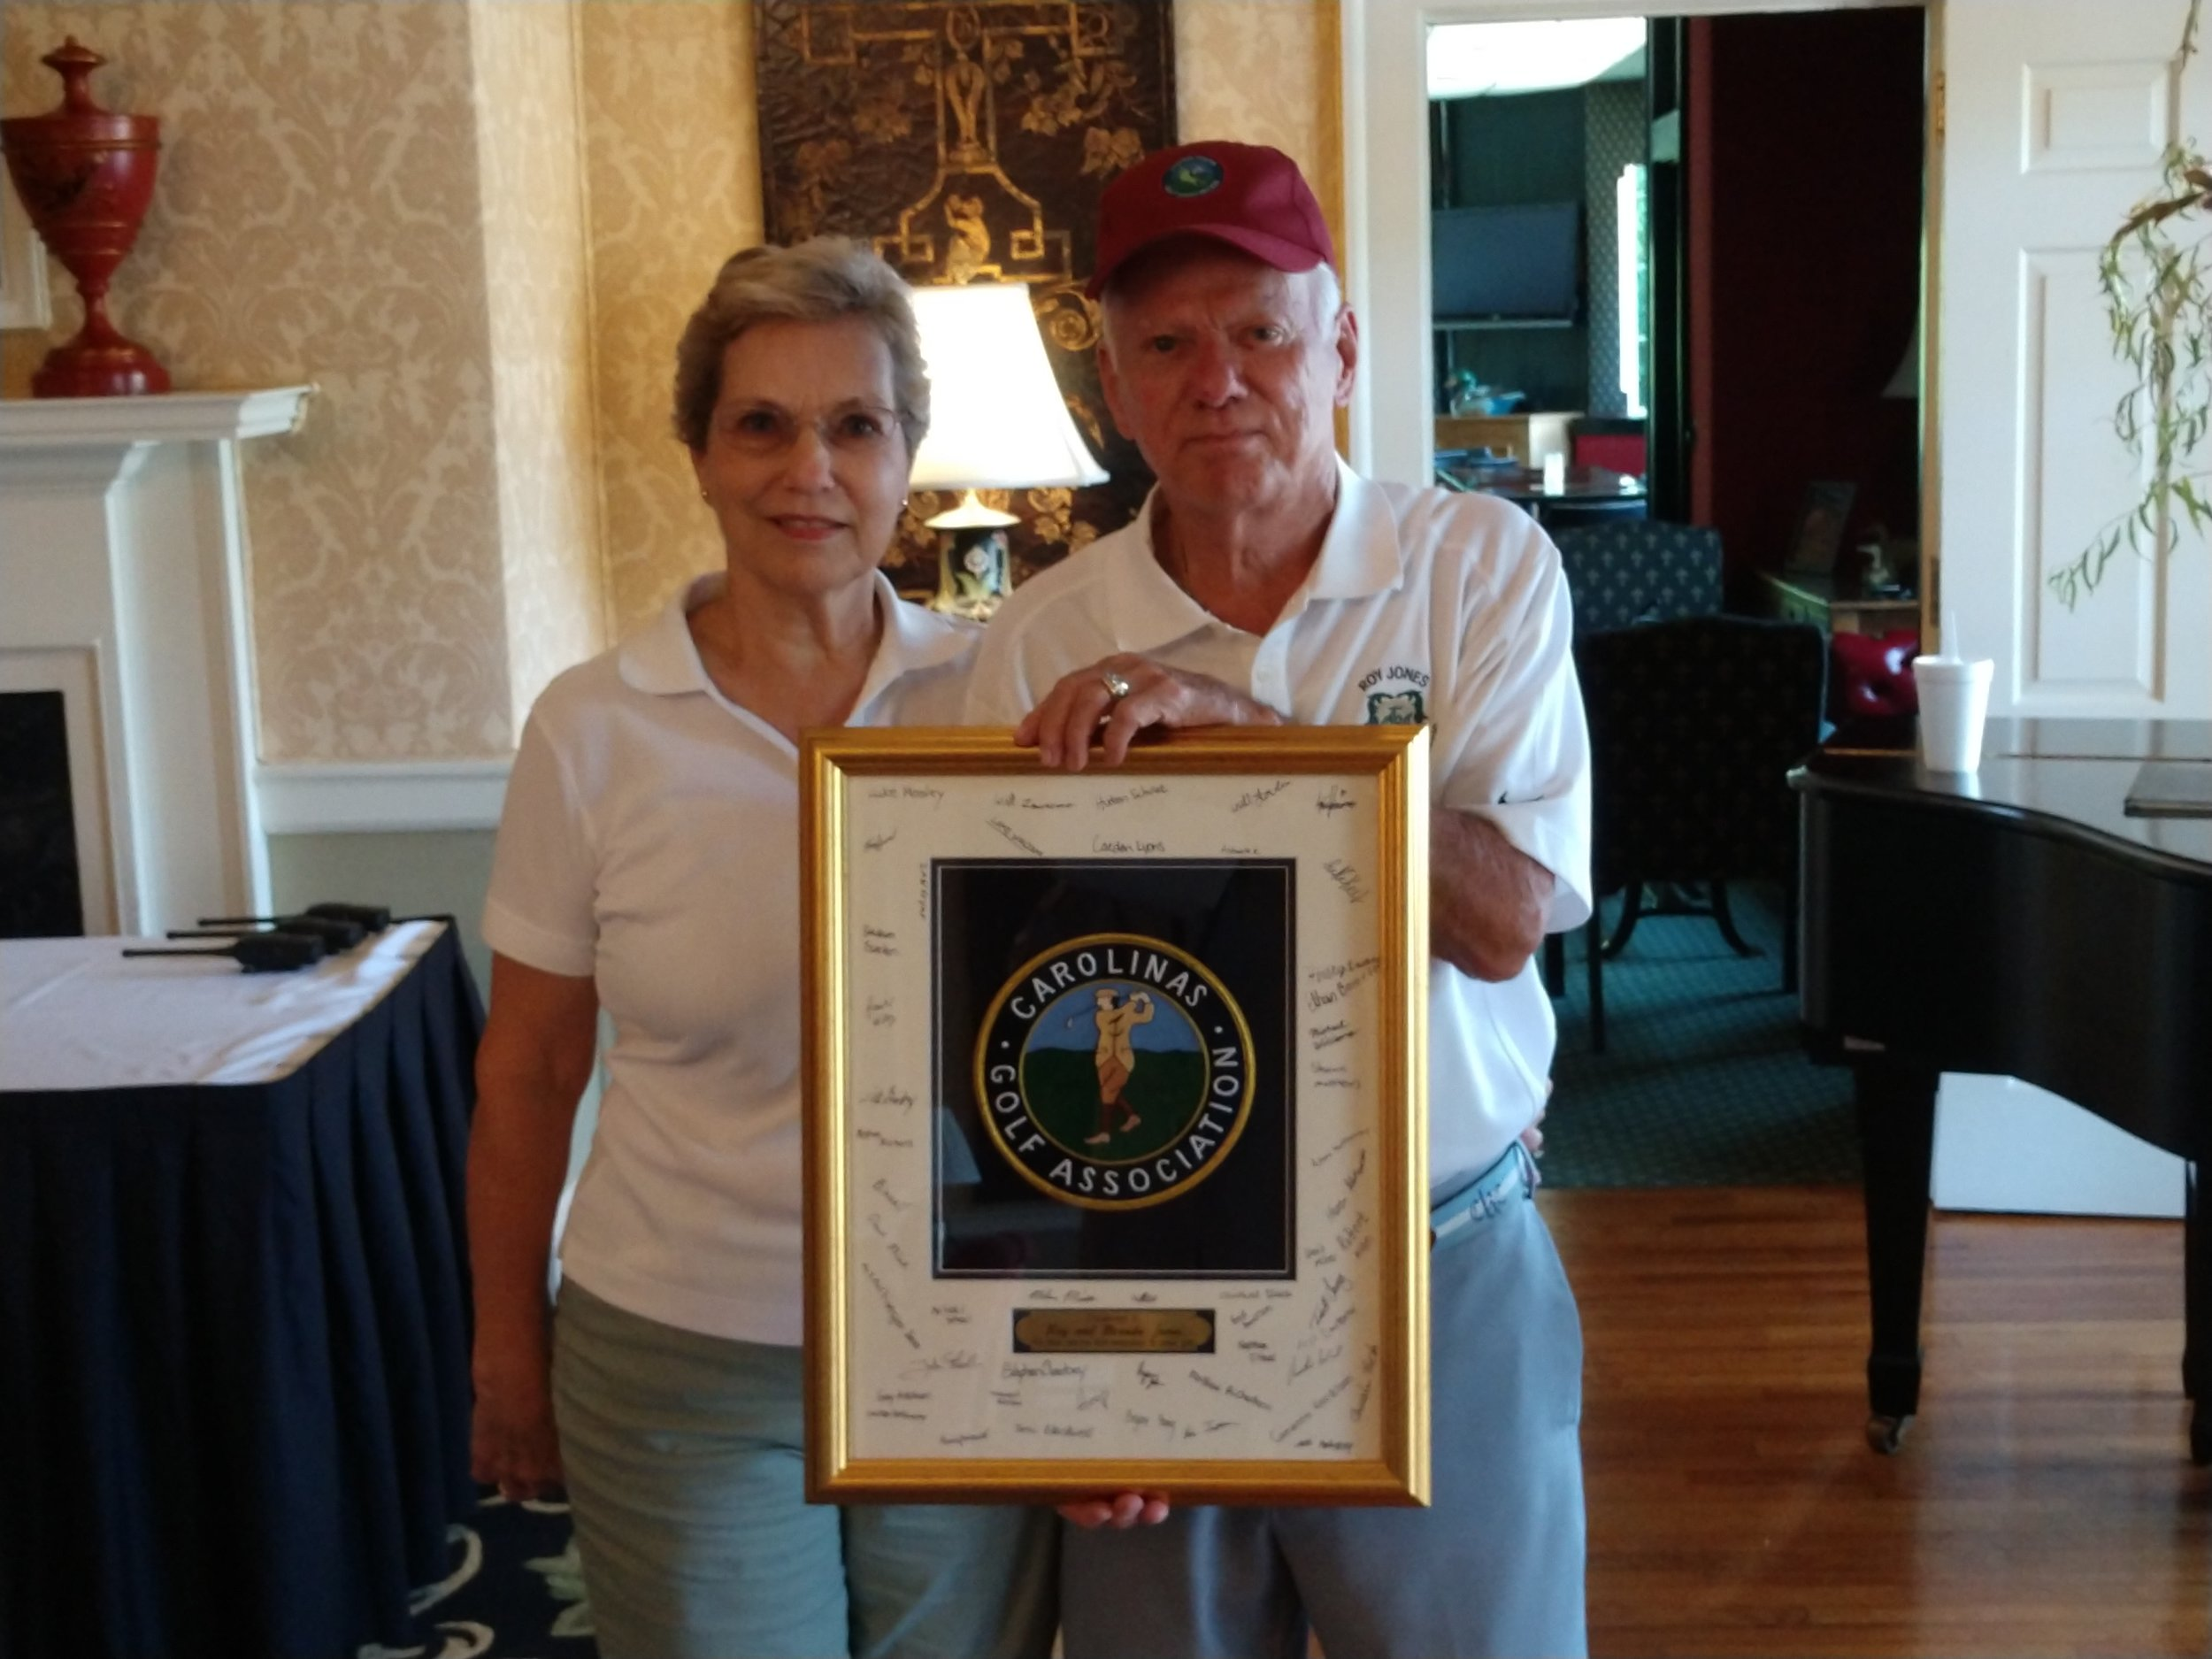 Roy Jones Jr. and his wife, Brenda, received a plaque from the Carolina Golf Association for their work growing the Roy Jones Junior Golf Classic over the years. Photo by Junious Smith III / Neuse News